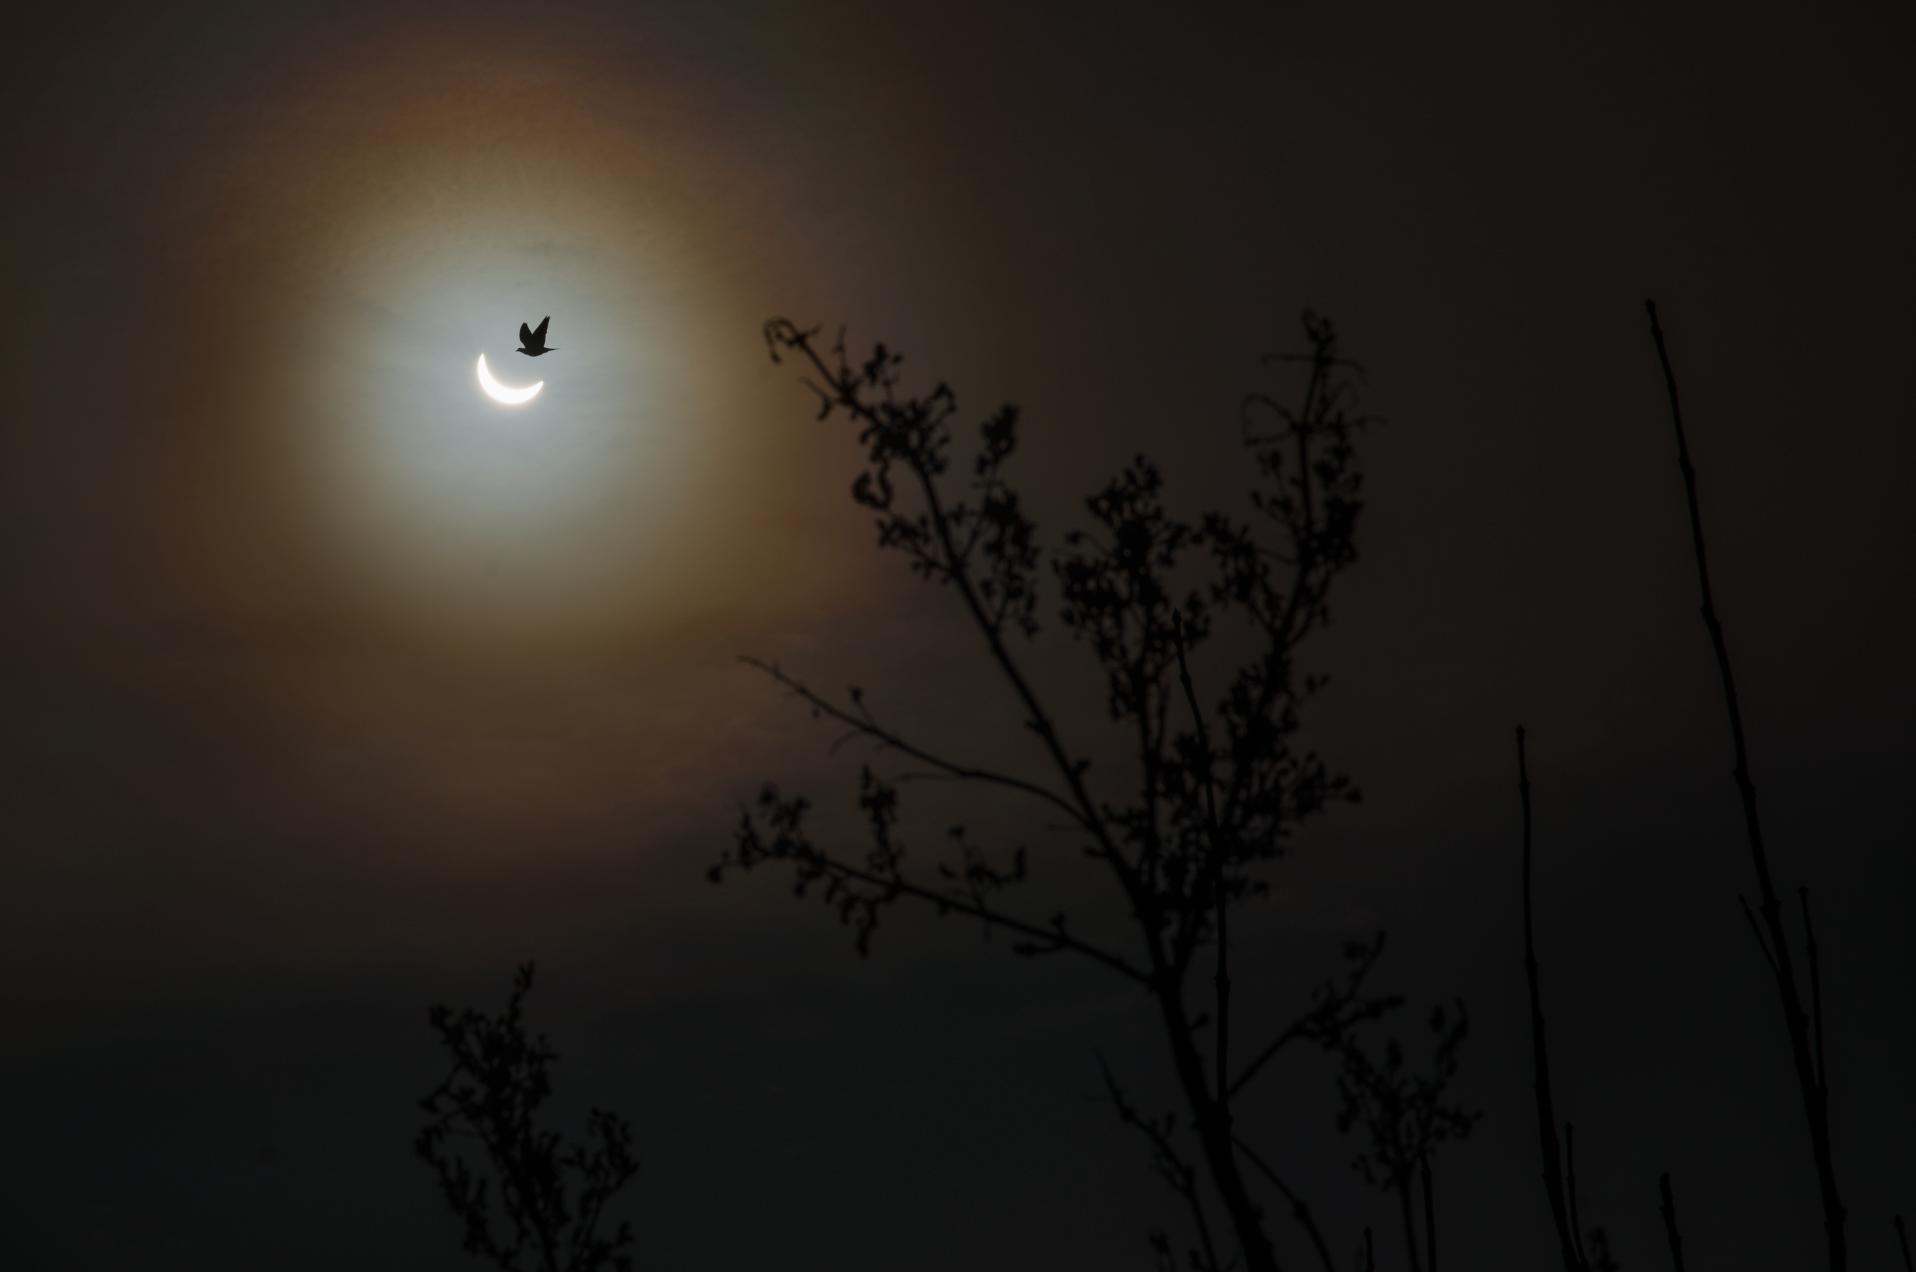 Solar eclipse from a back garden in Leicestershire, England